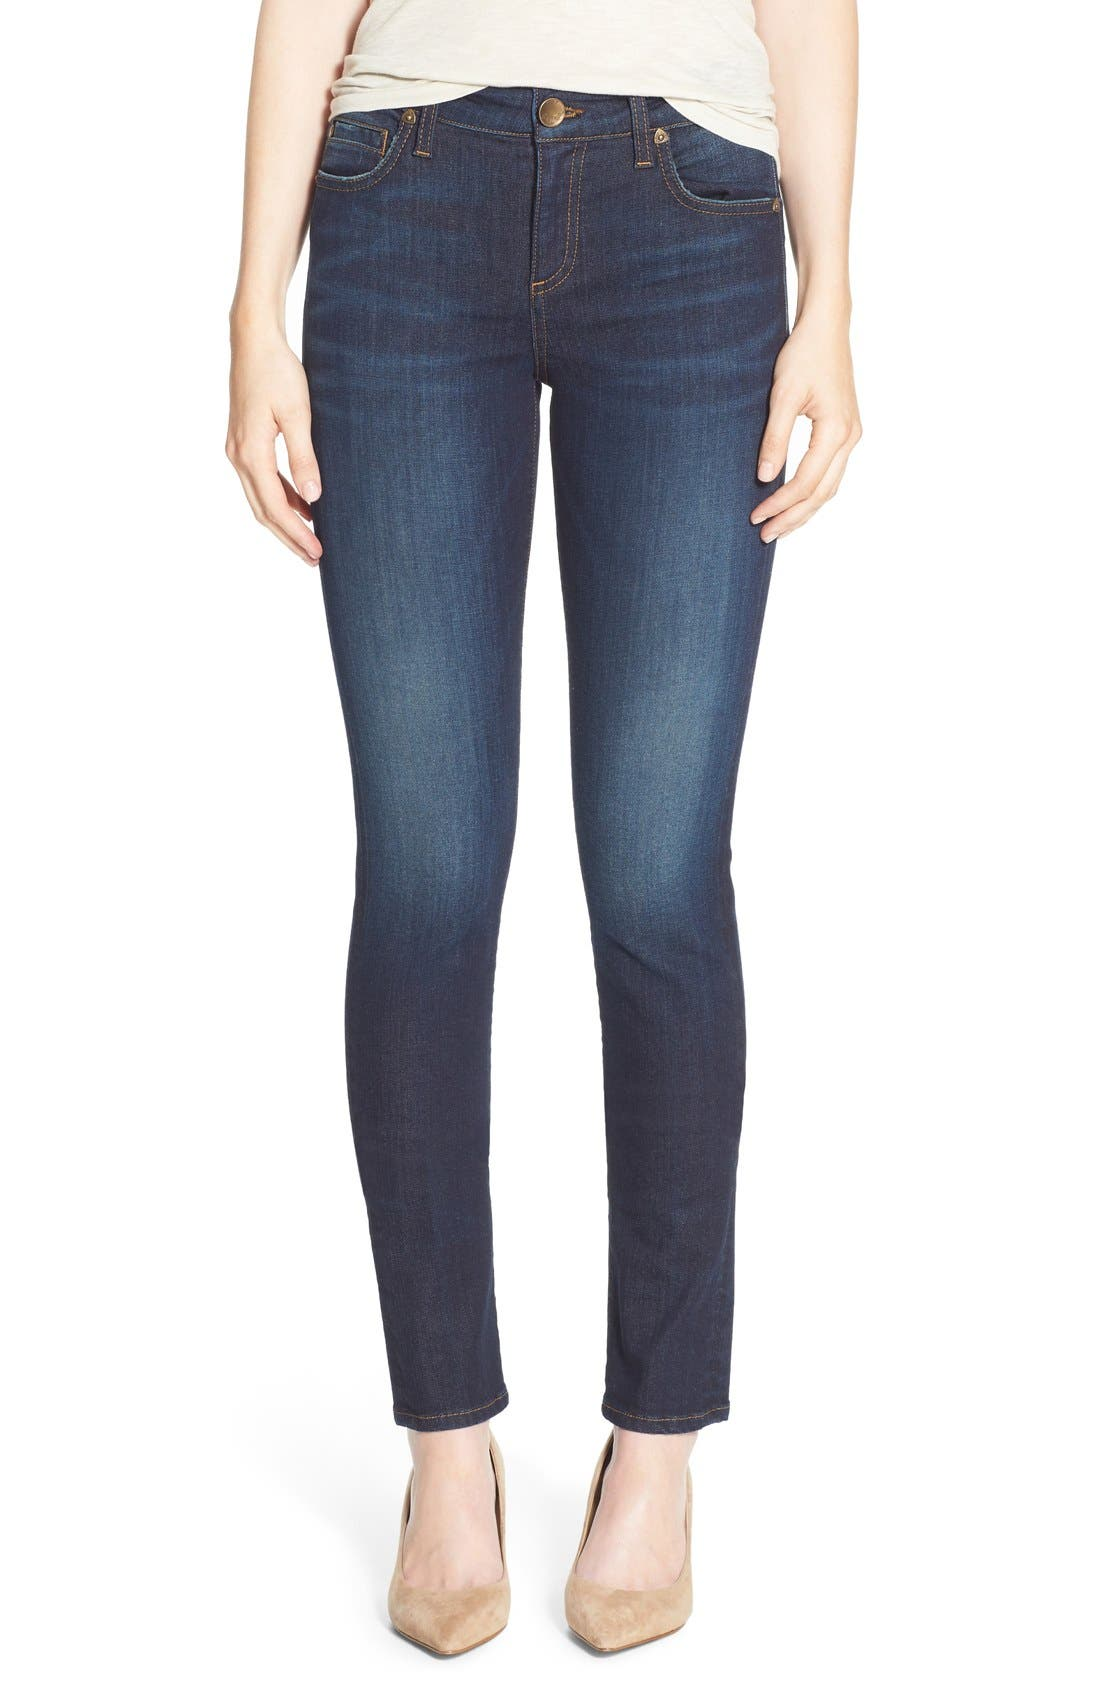 Alternate Image 1 Selected - KUT from the Kloth 'Diana' Stretch Skinny Jeans (Blinding) (Regular & Petite)